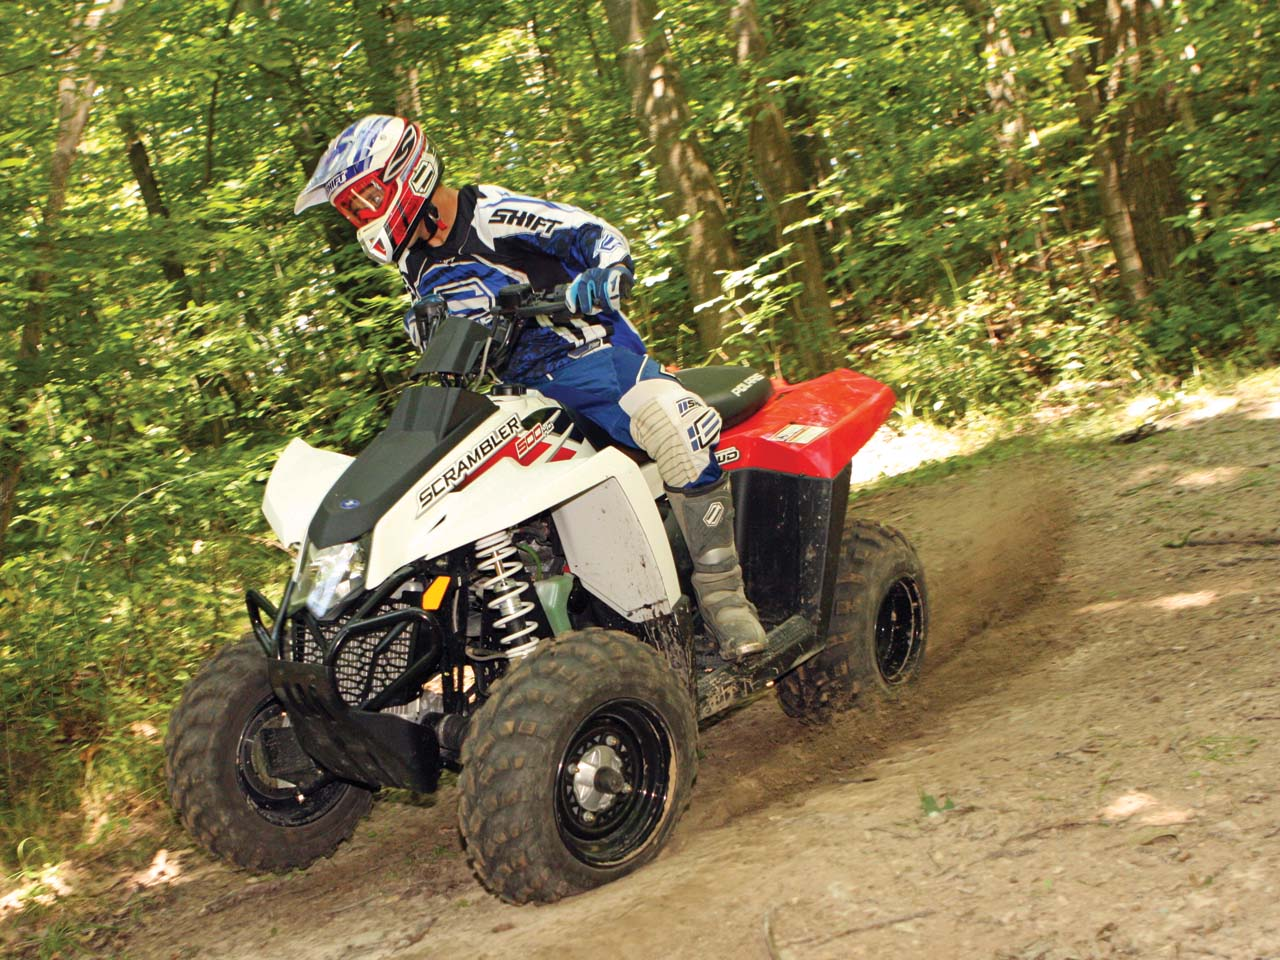 Polaris Scrambler 500 4x4 2006 images #121174